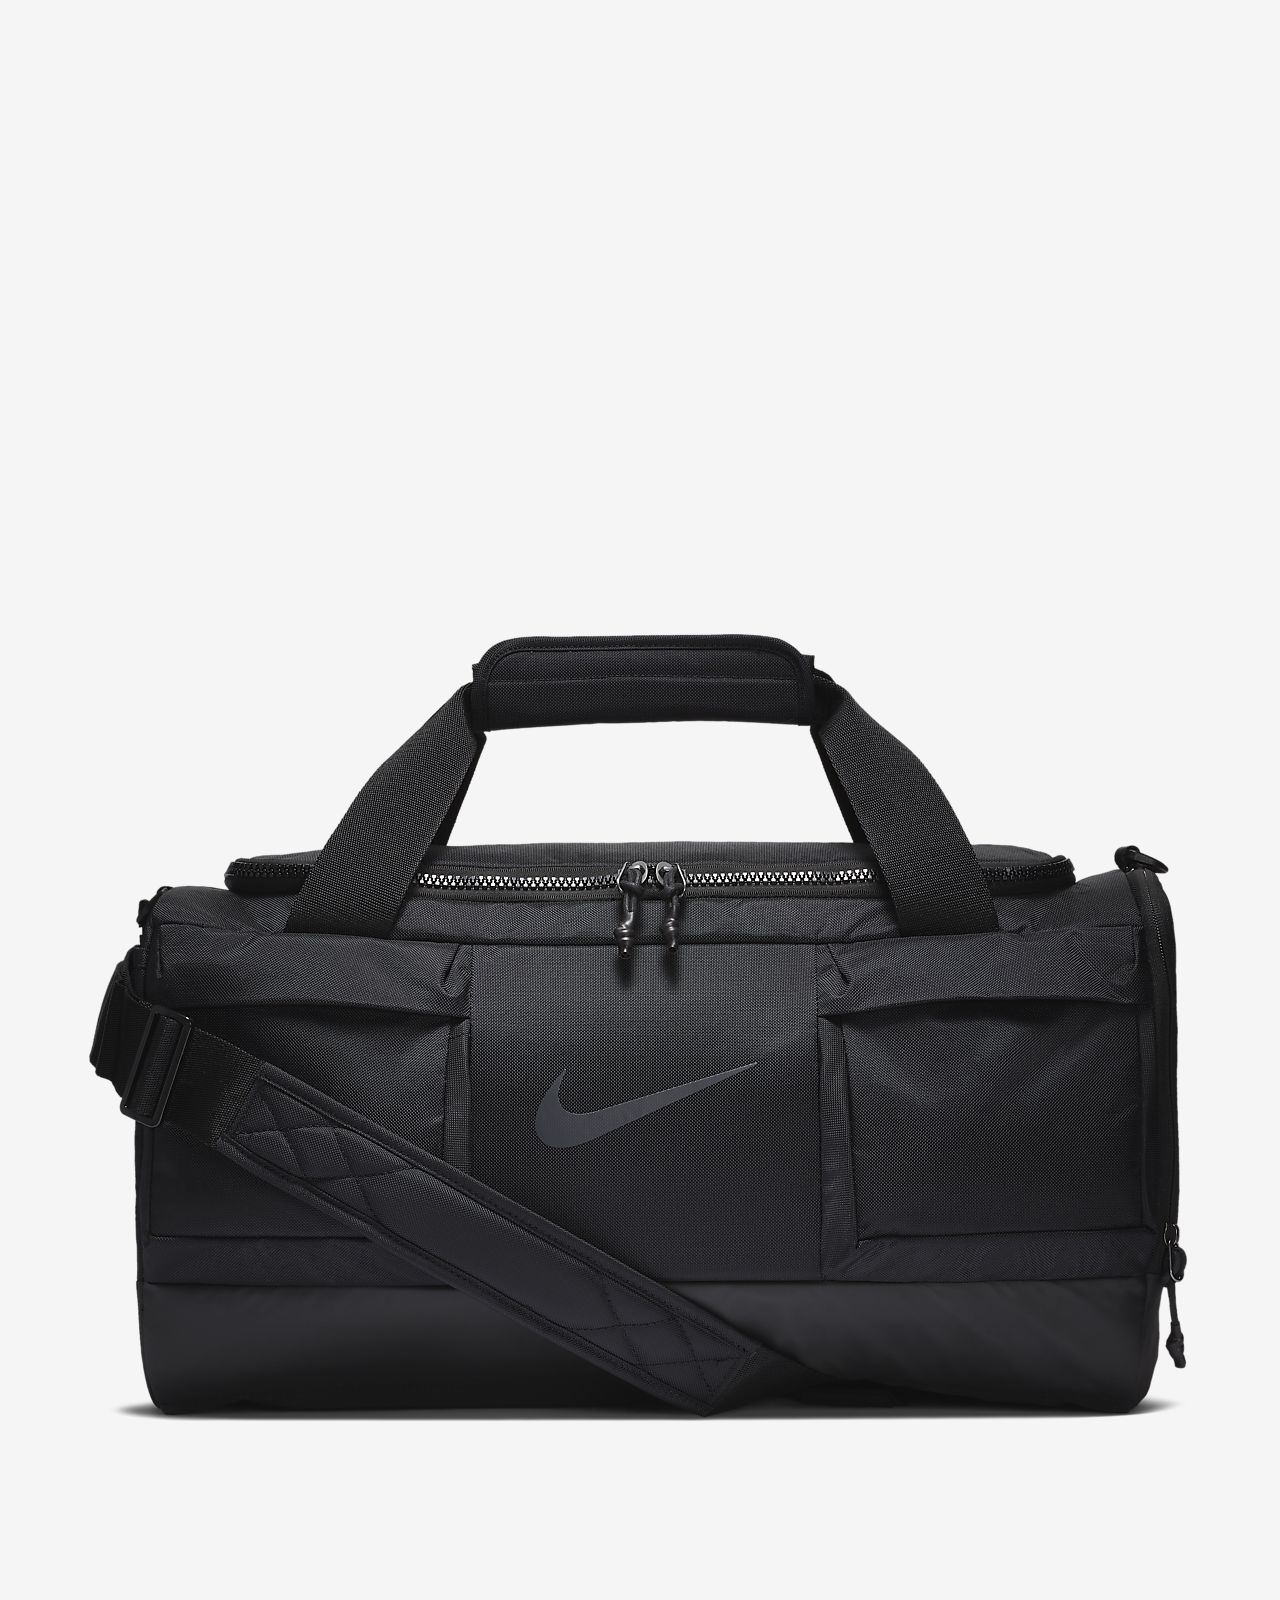 2c27309fa3e8 Nike Vapor Power Men s Training Duffel Bag (Small). Nike.com GB